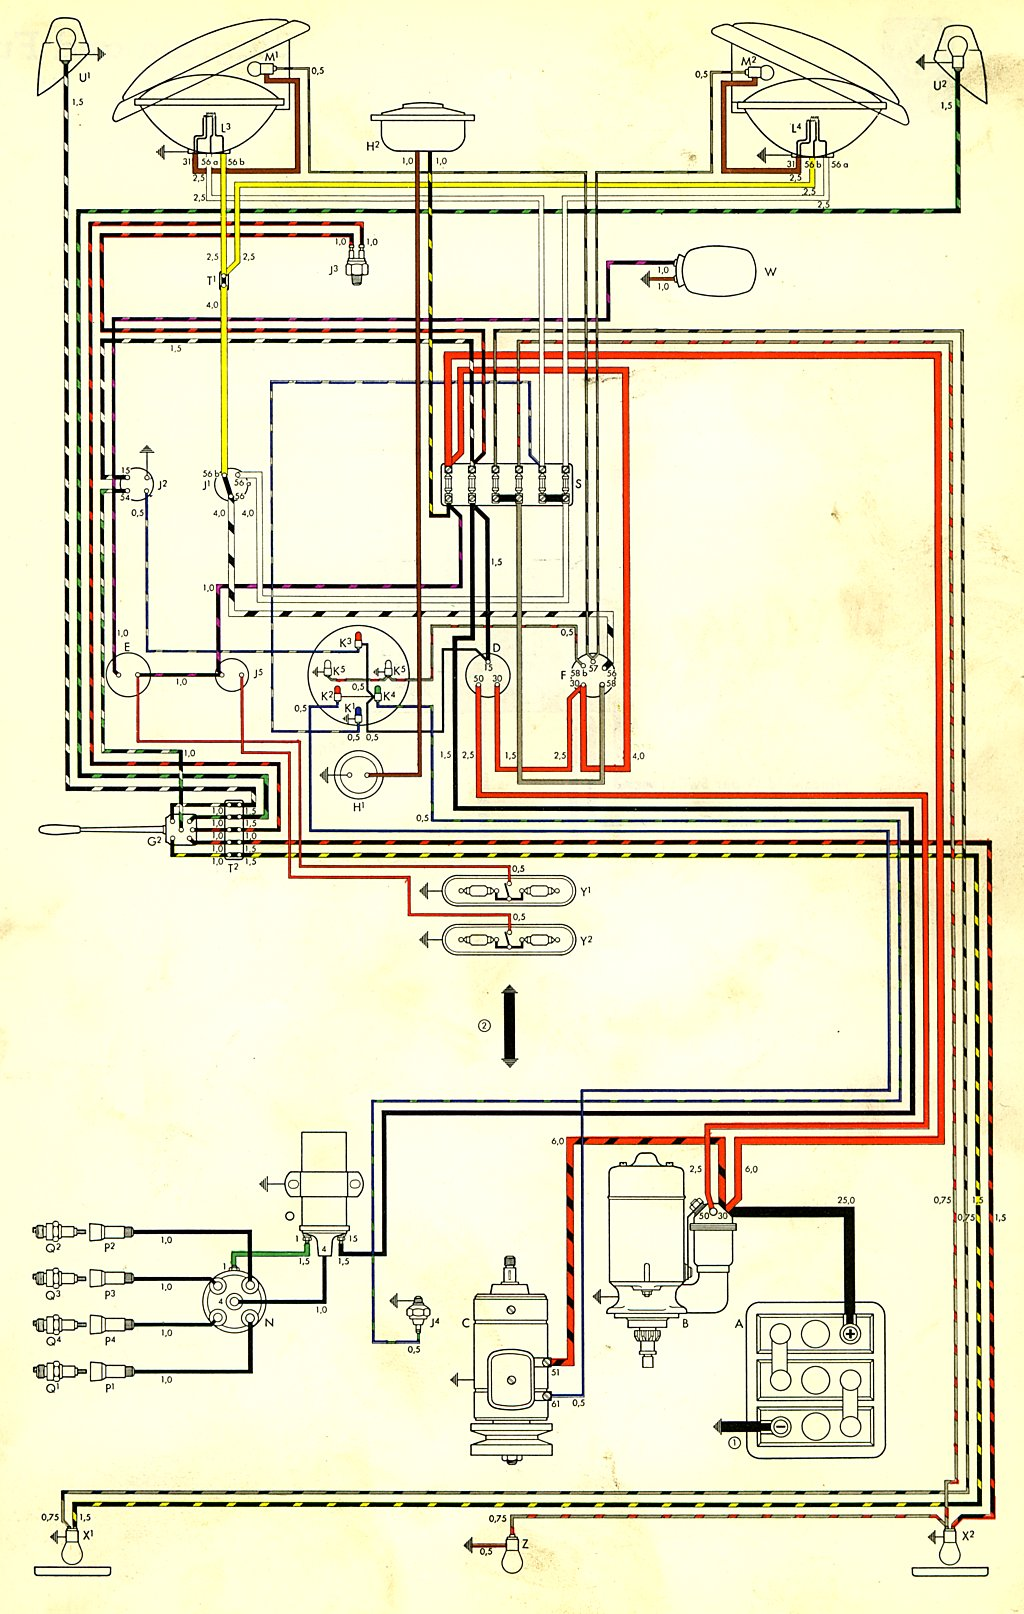 74 Vw Wiring Diagrams Automotive Just Another Diagram Blog Volkswagen Schema Online Rh 3 4 5 Travelmate Nz De 1973